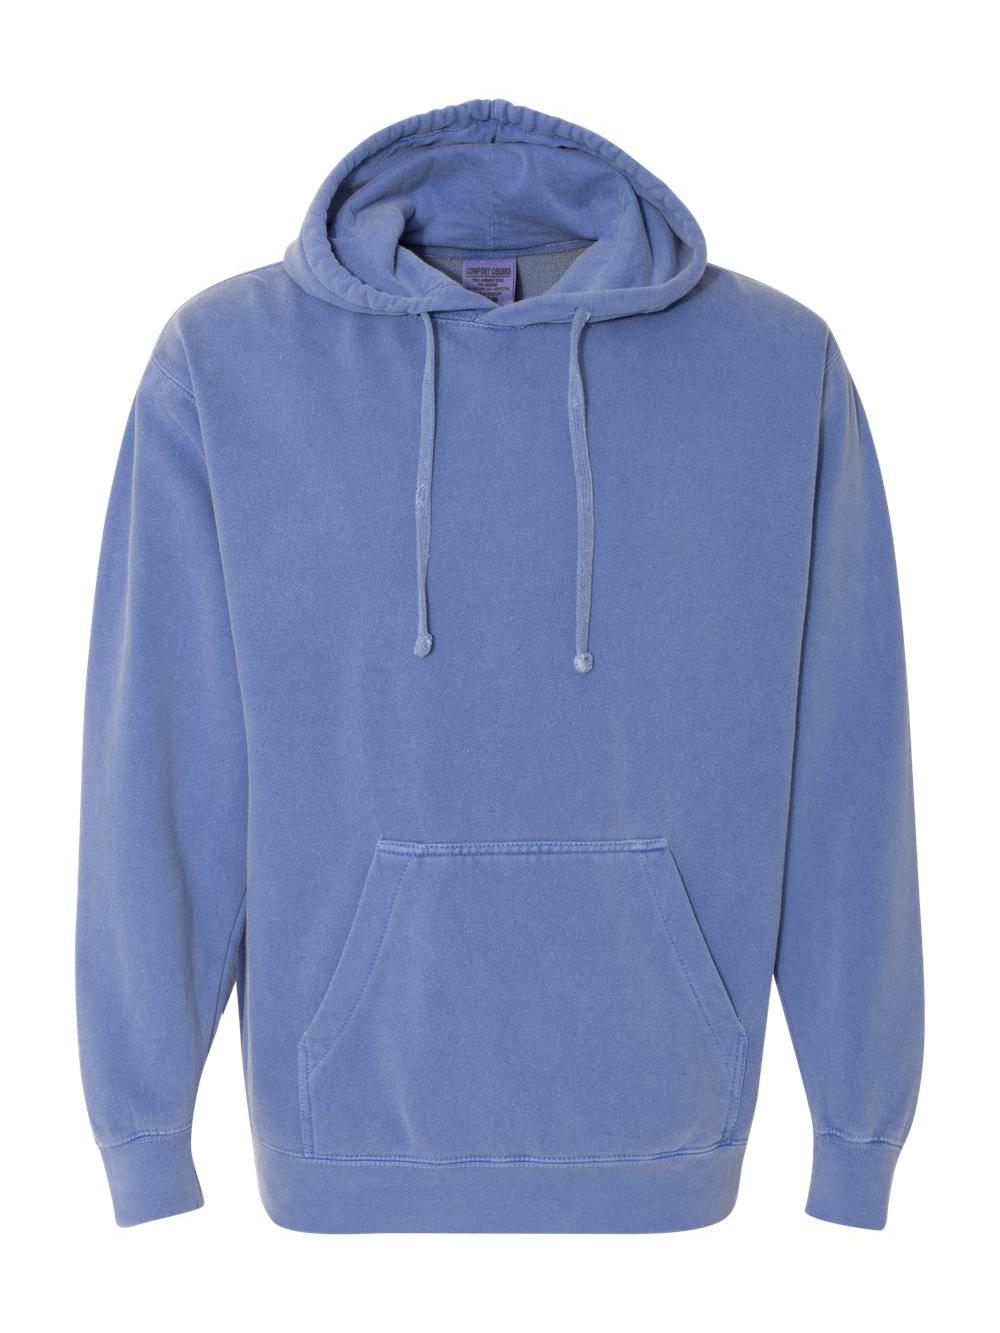 Comfort-Colors-Garment-Dyed-Hooded-Pullover-Sweatshirt-1567 thumbnail 15